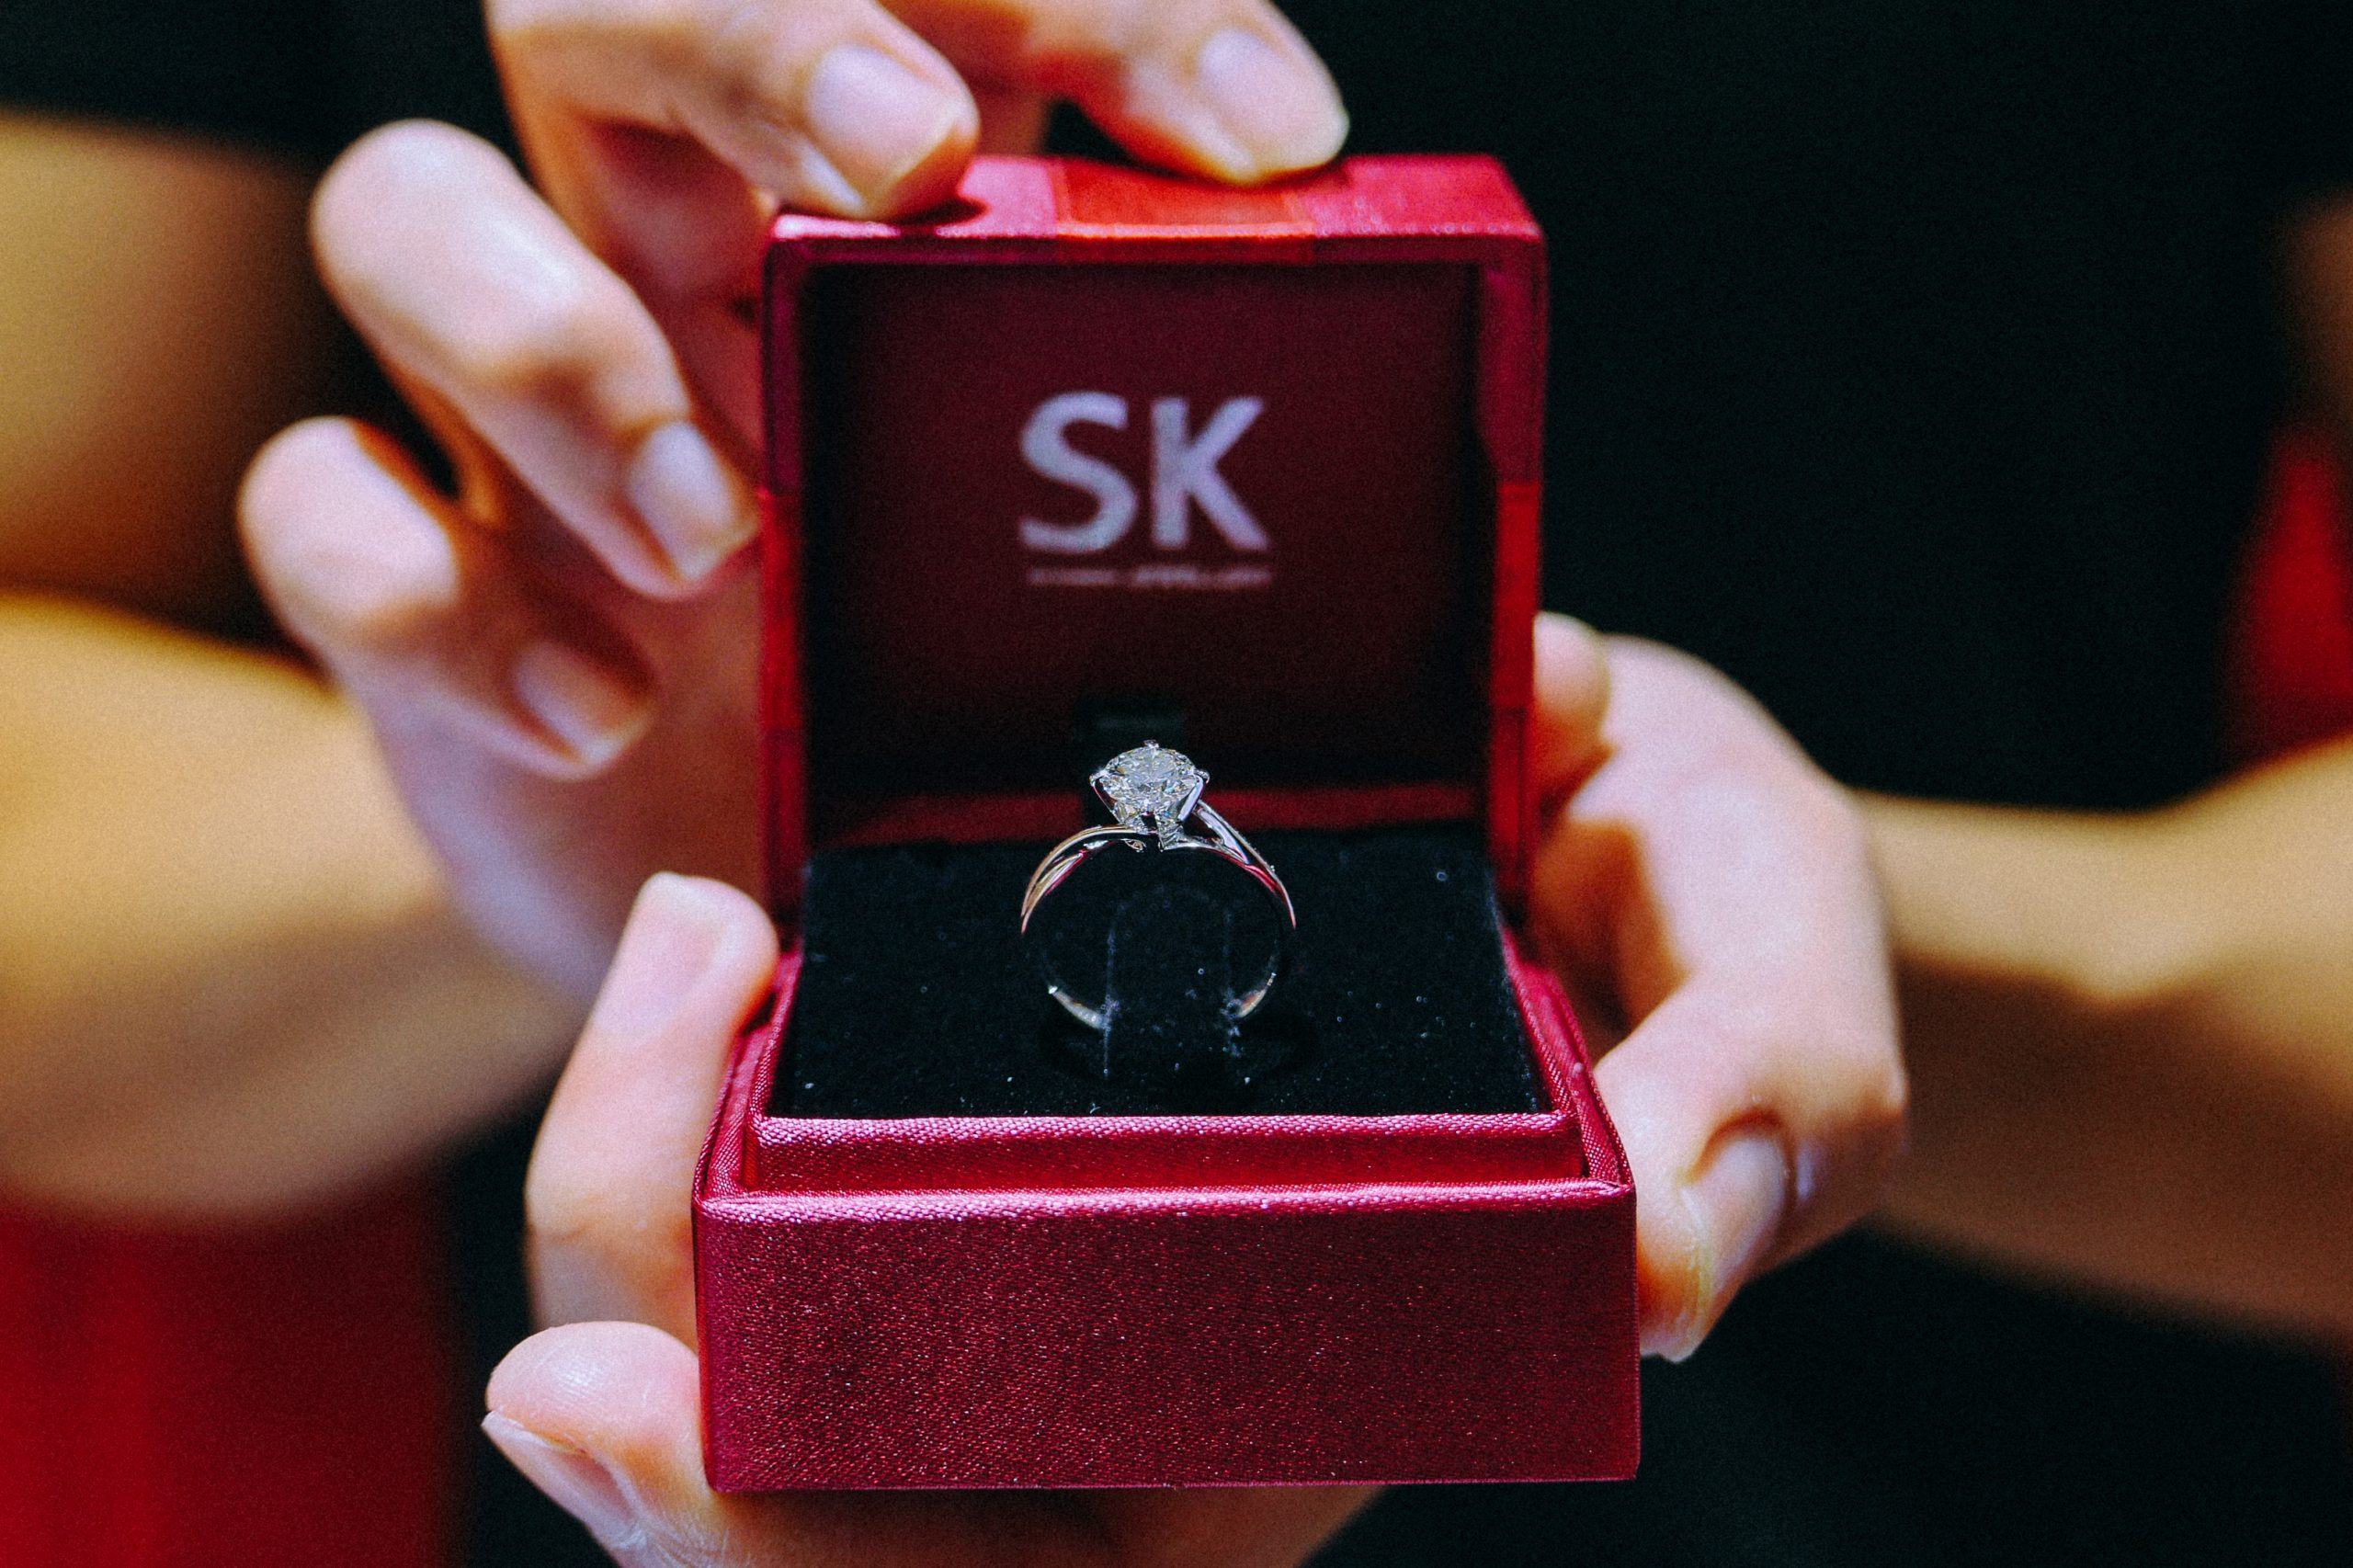 Singaporean Men on the Pressures of Searching for the Perfect Wedding Ring